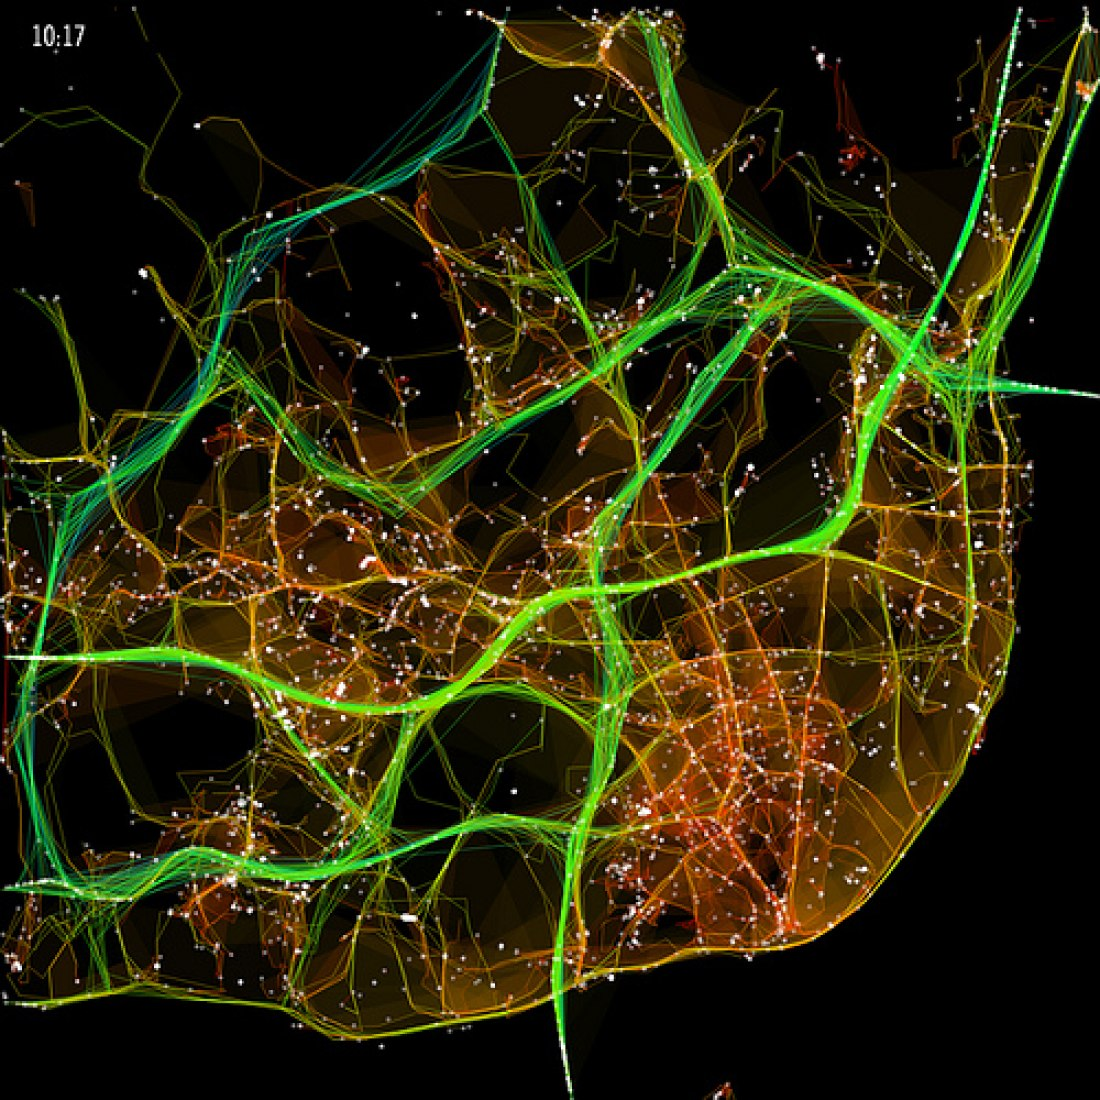 1,534 vehicles, in October 2009 in Lisbon, leaving traces of route, condensed in a single day. The fast arteries are drawn with green and cold colors, while the slow ones are reddish and hotter. However, traffic intensity is assigned according to the thickness and brightness of the arteries. White dots represent vehicles, and there is visual emphasis on areas with slower traffic.